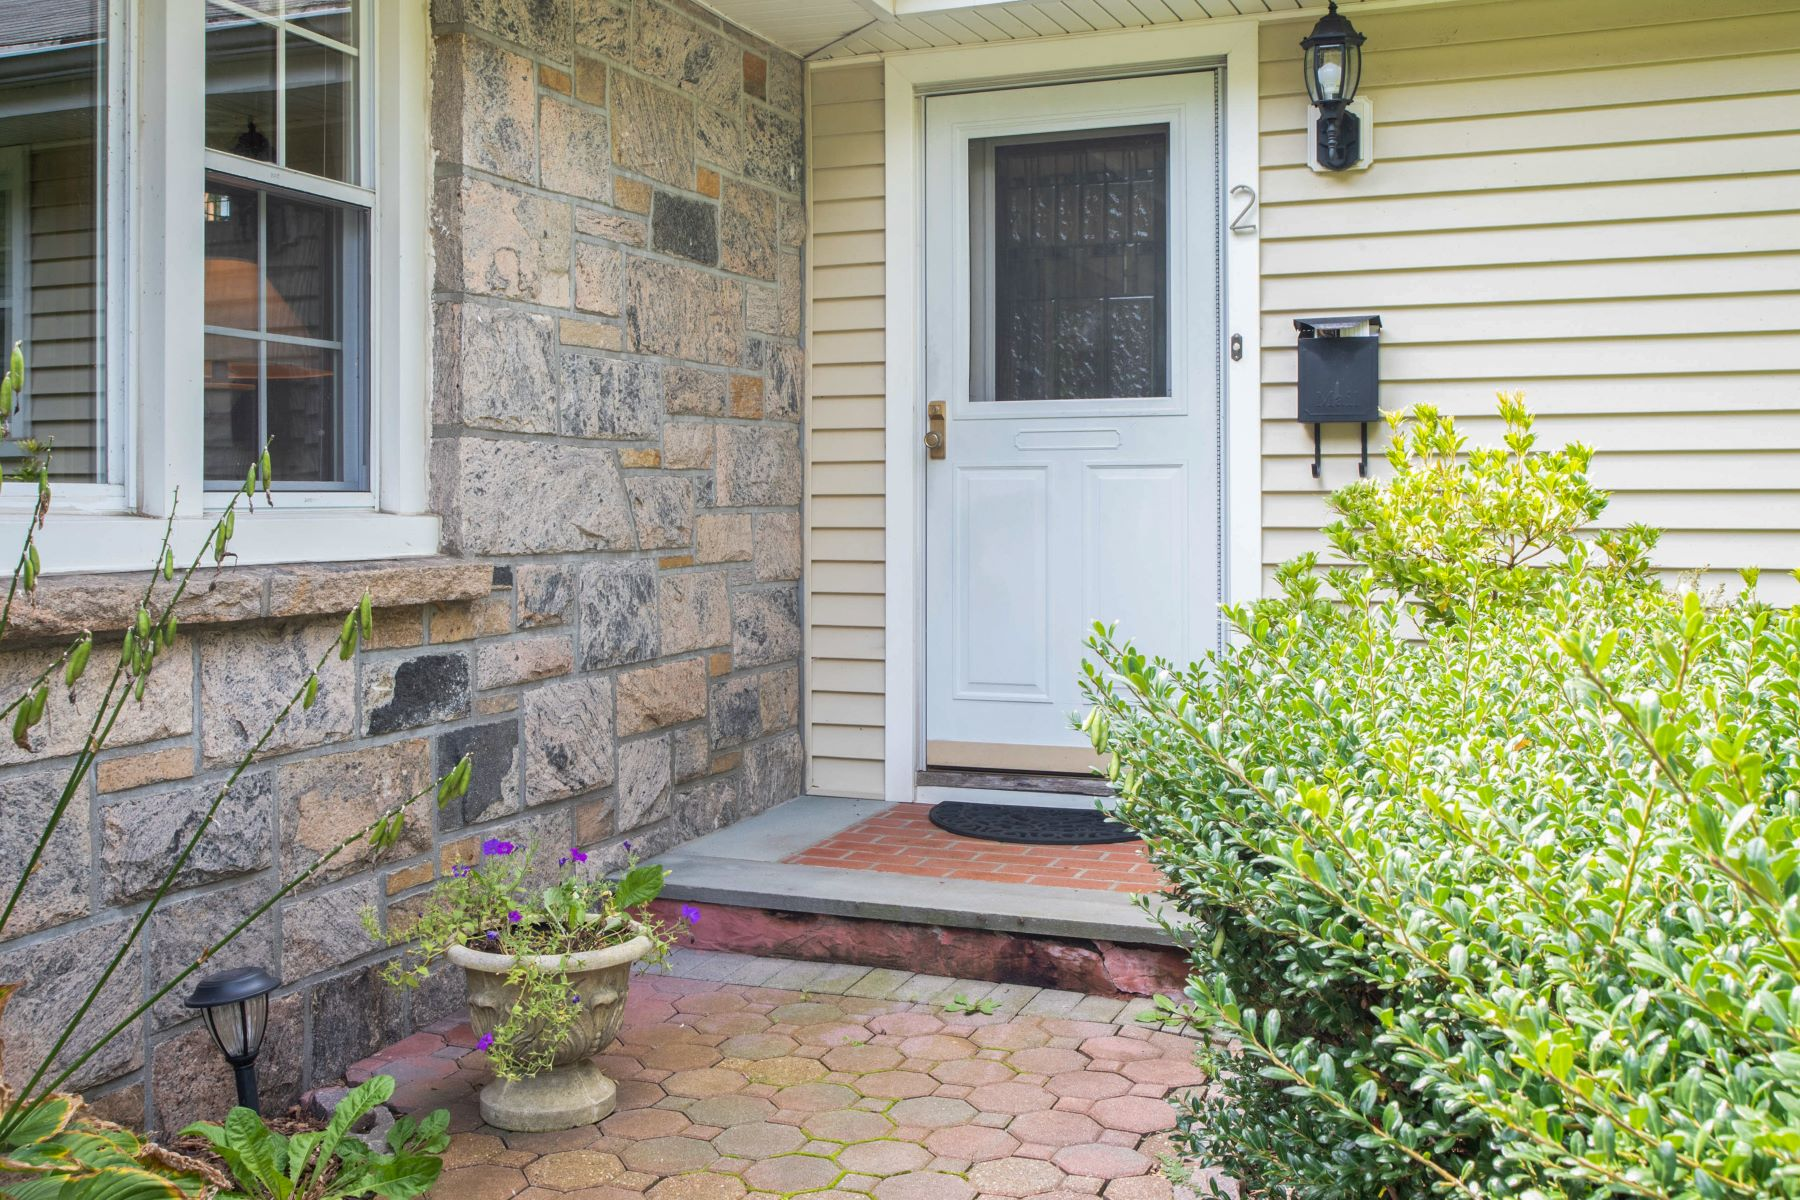 Single Family Homes for Sale at A Charming, Well Maintained Ranch 2 Millard Avenue Sleepy Hollow, New York 10591 United States